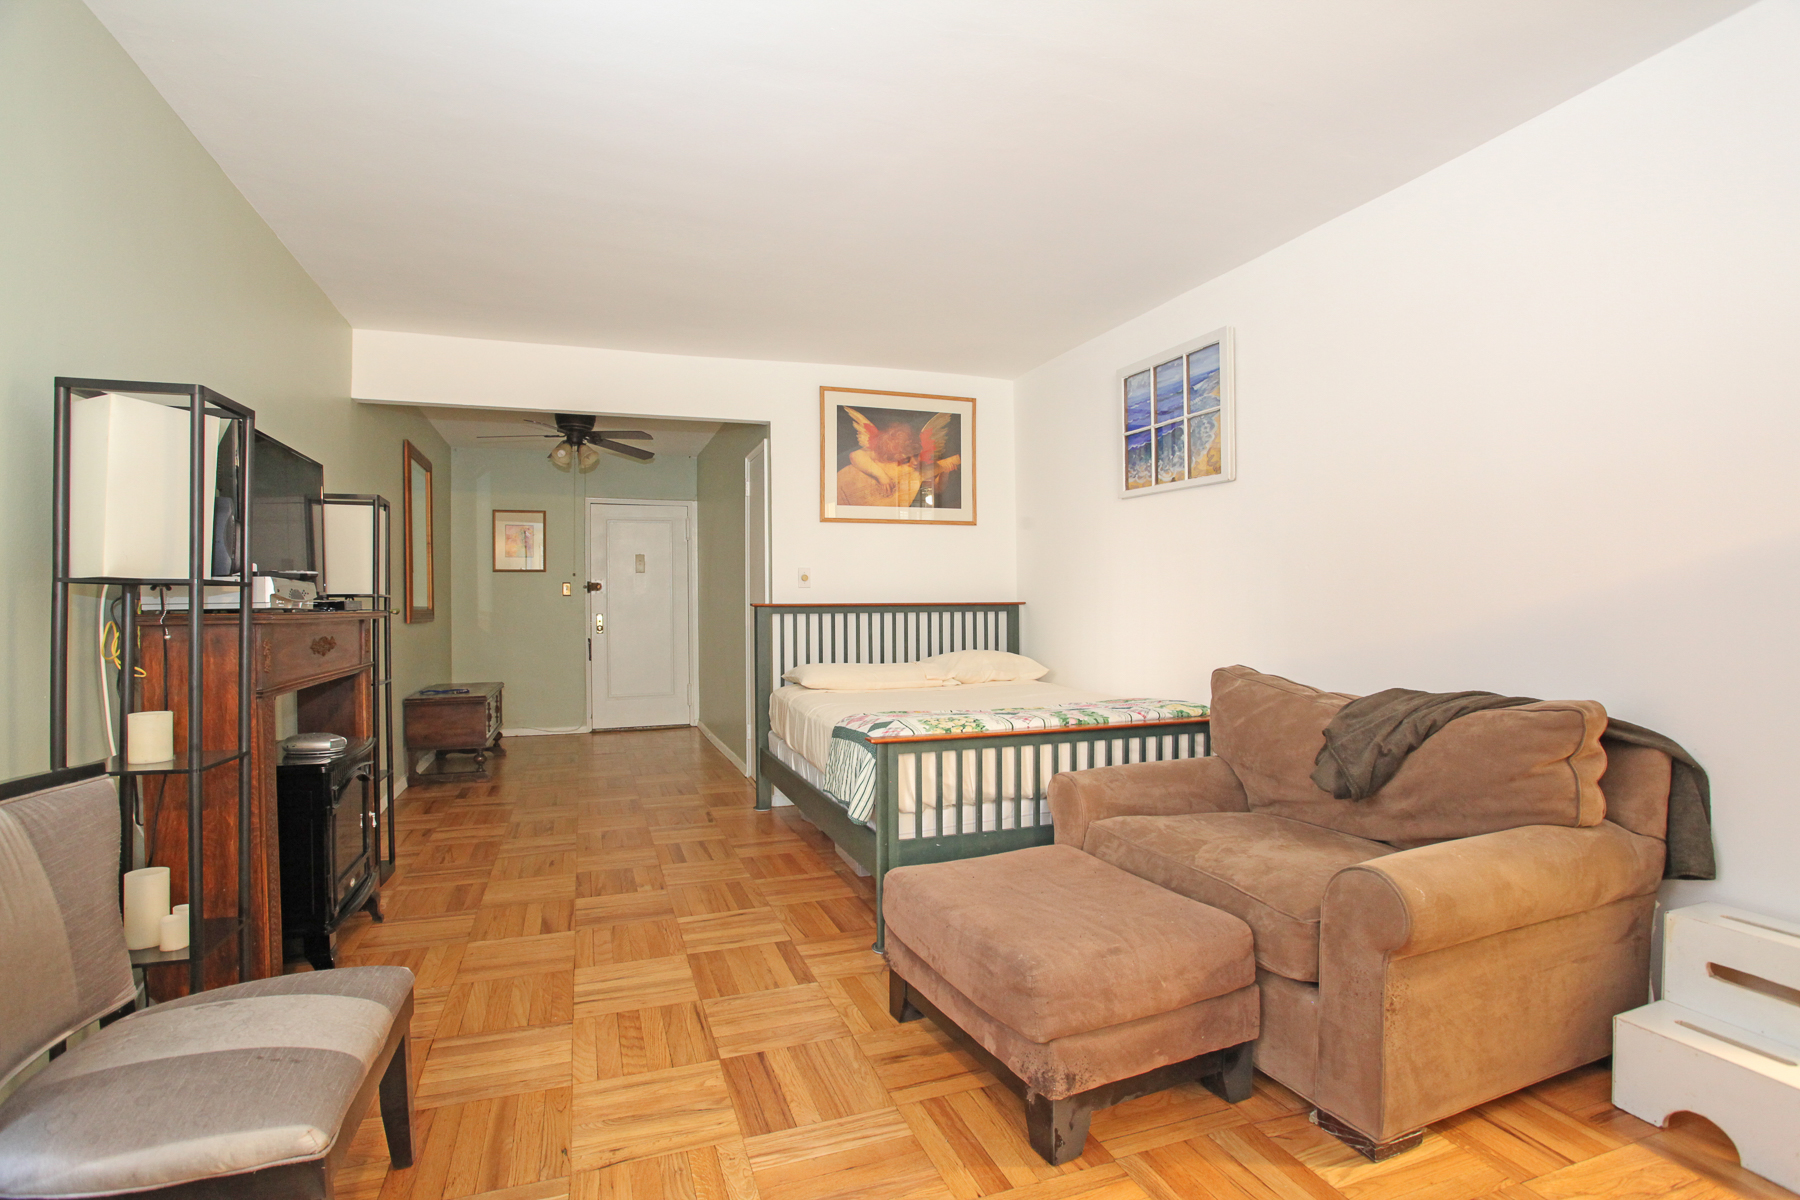 Co-op for Sale at Huge Renovated Studio 5601 Riverdale Avenue 2T Riverdale, New York 10471 United States